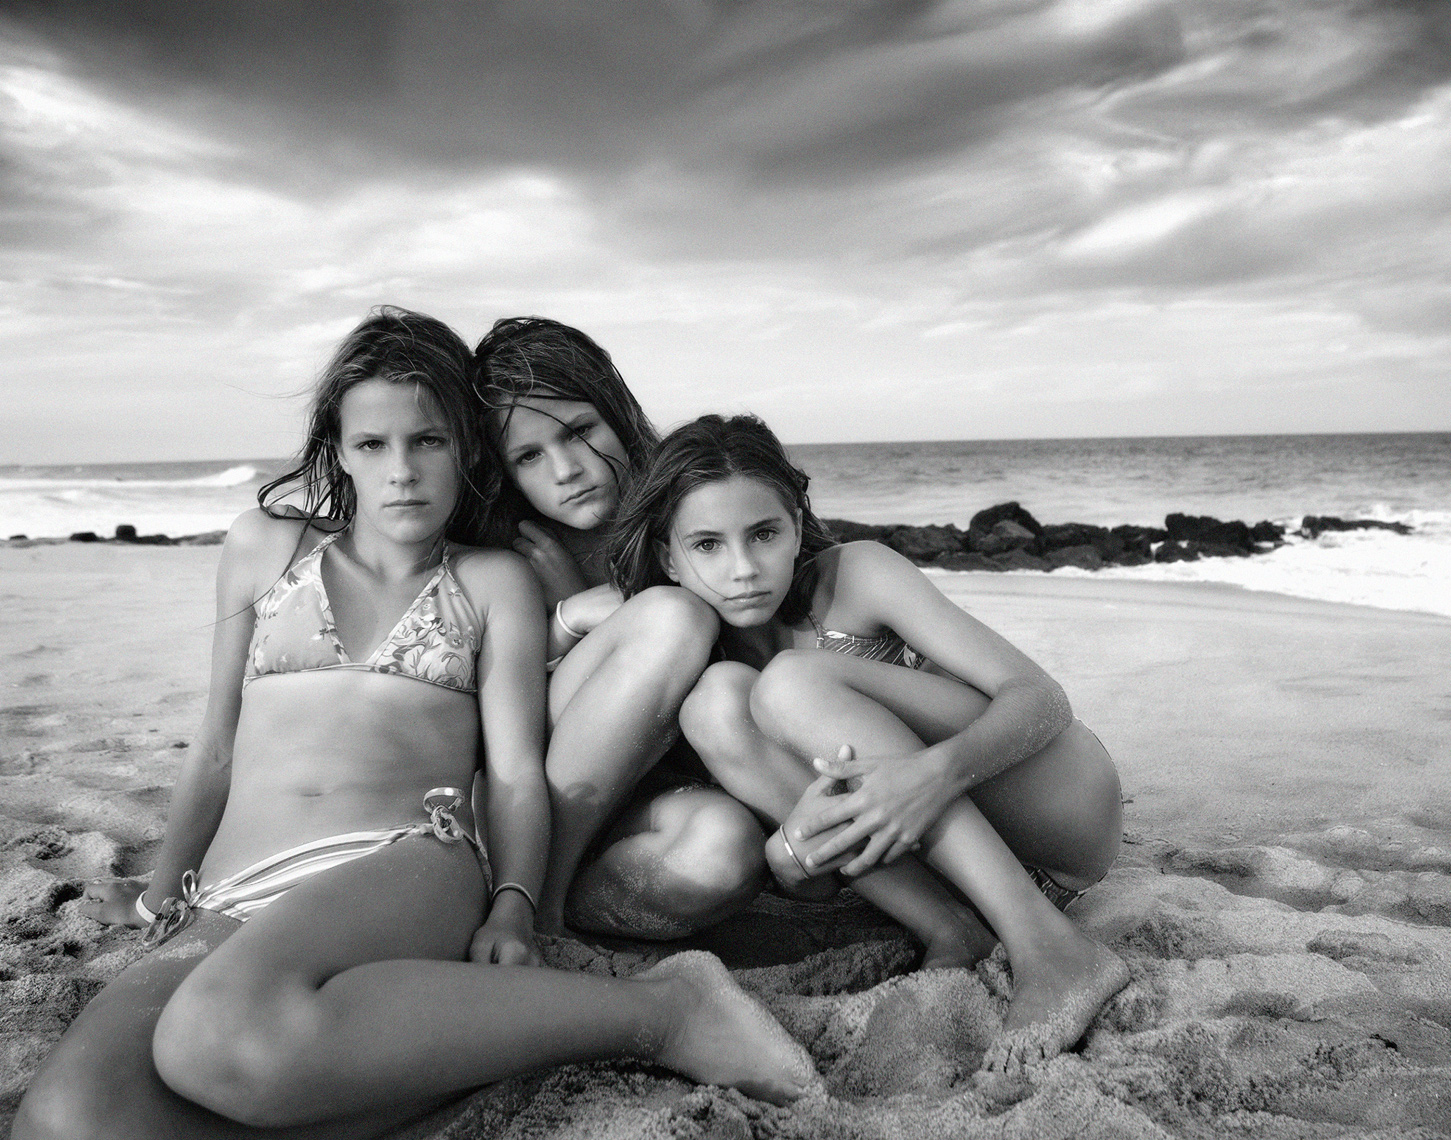 Three teen surfer girls, Michael Brian Kids Photography, Los Angeles, beach girls, bikinis